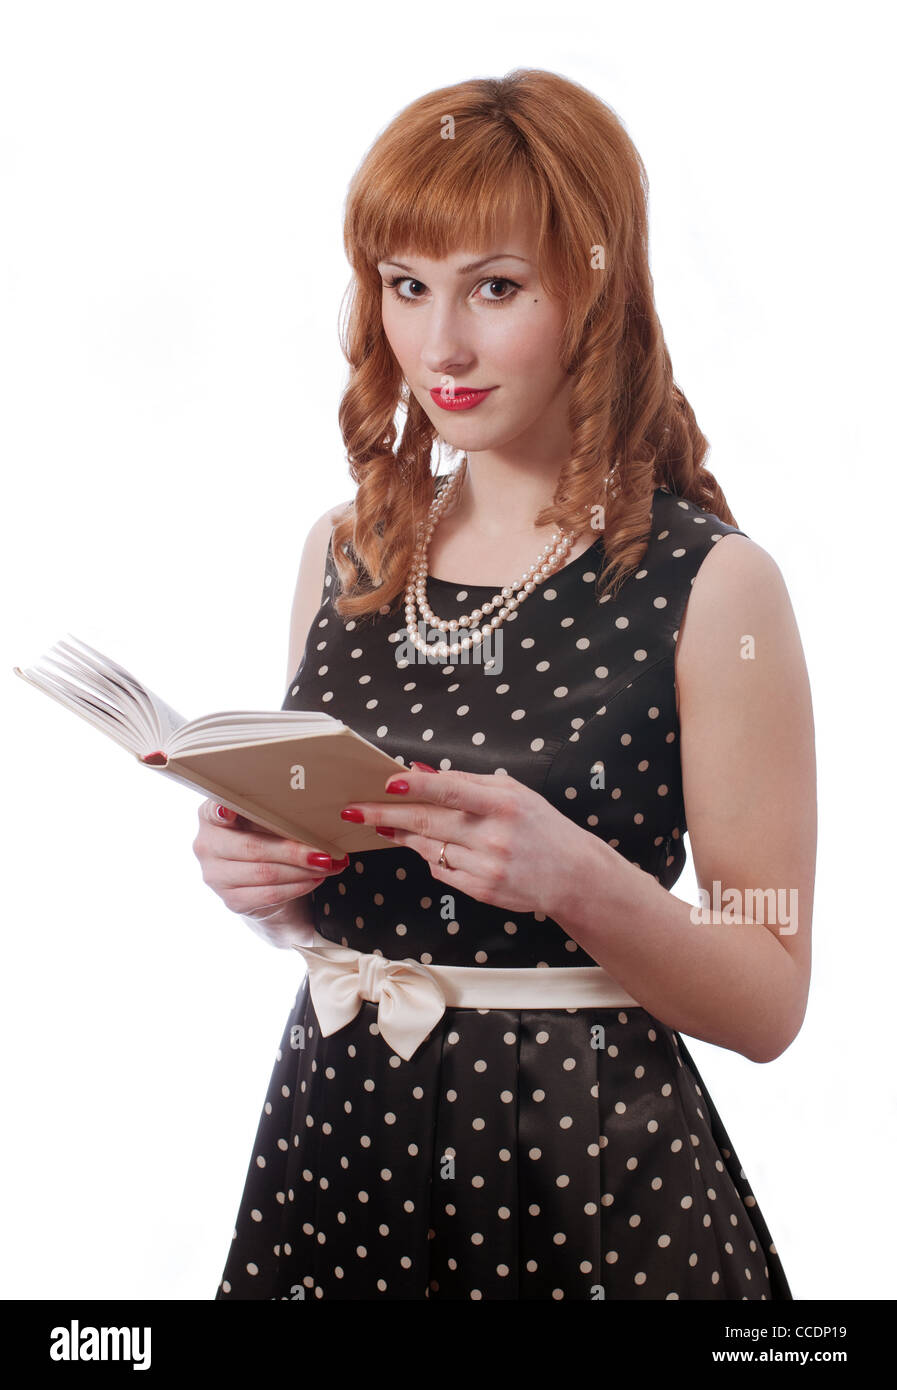 Retro girl with the book in the hands - Stock Image